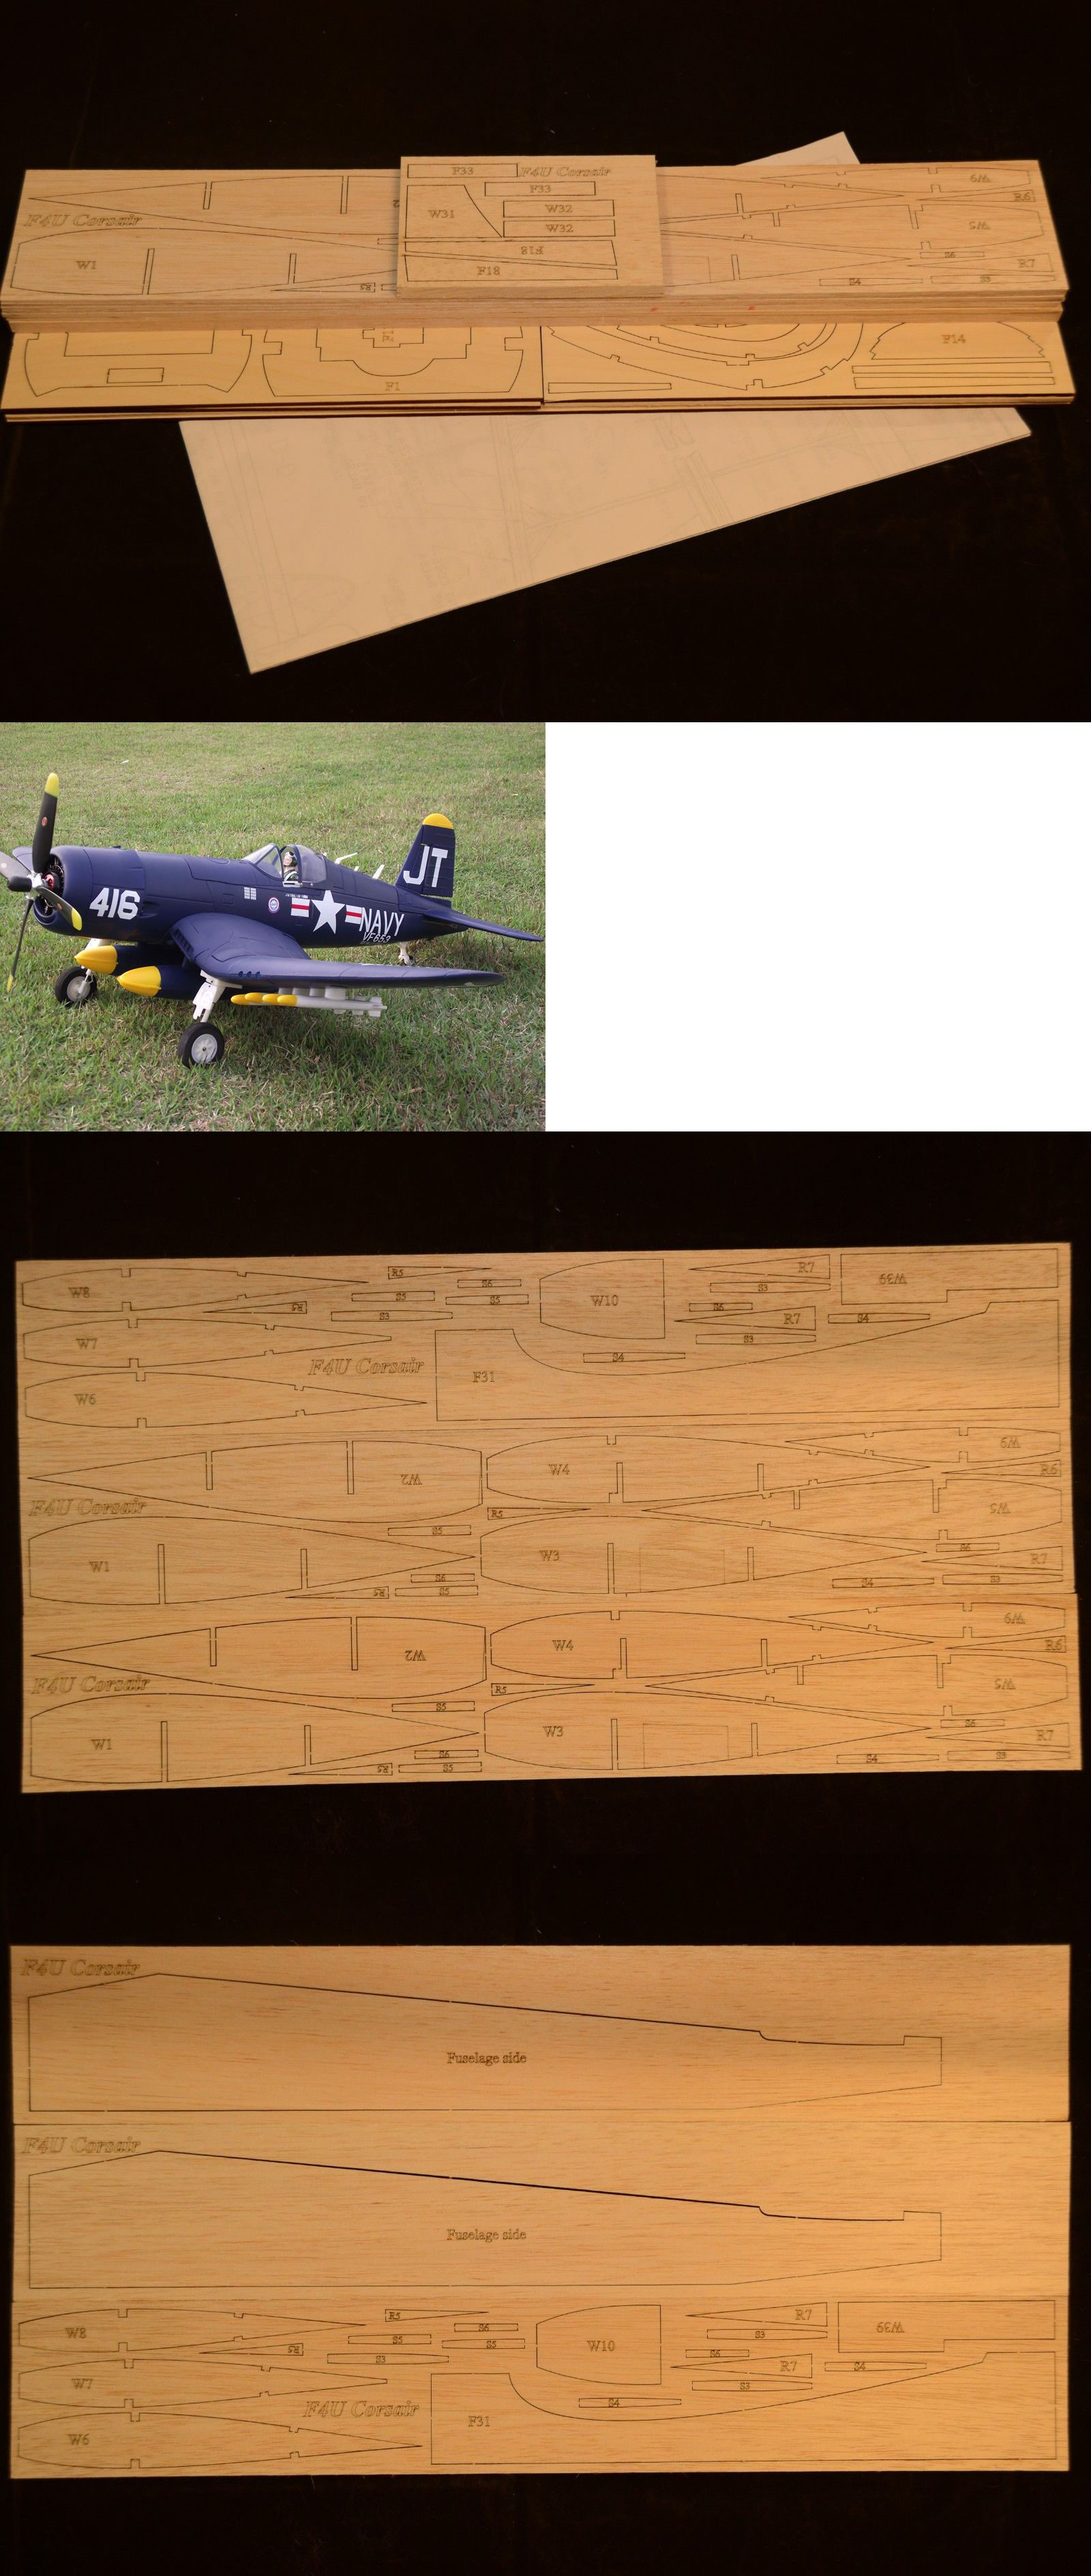 Pin On Model Airplane Plans